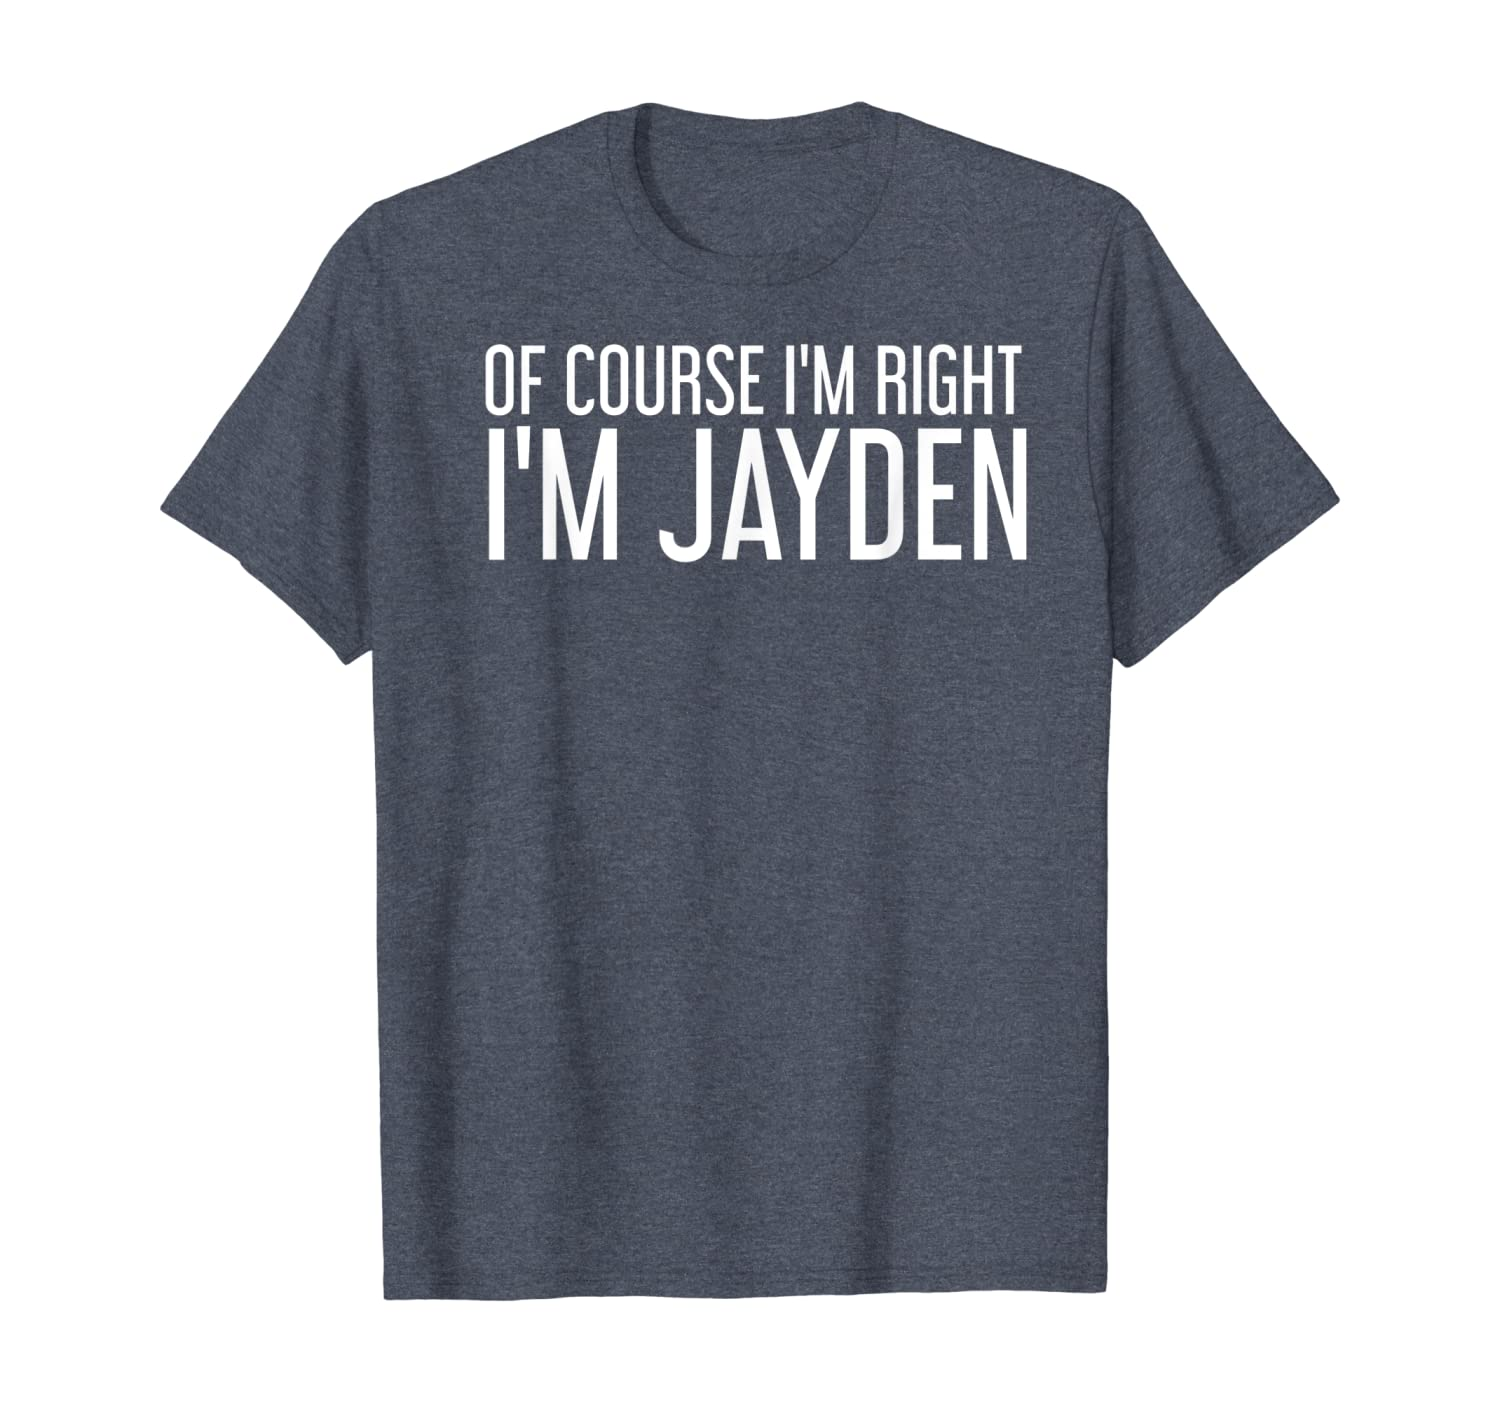 OF COURSE I'M RIGHT I'M JAYDEN Funny Personalized Name Gift T-Shirt